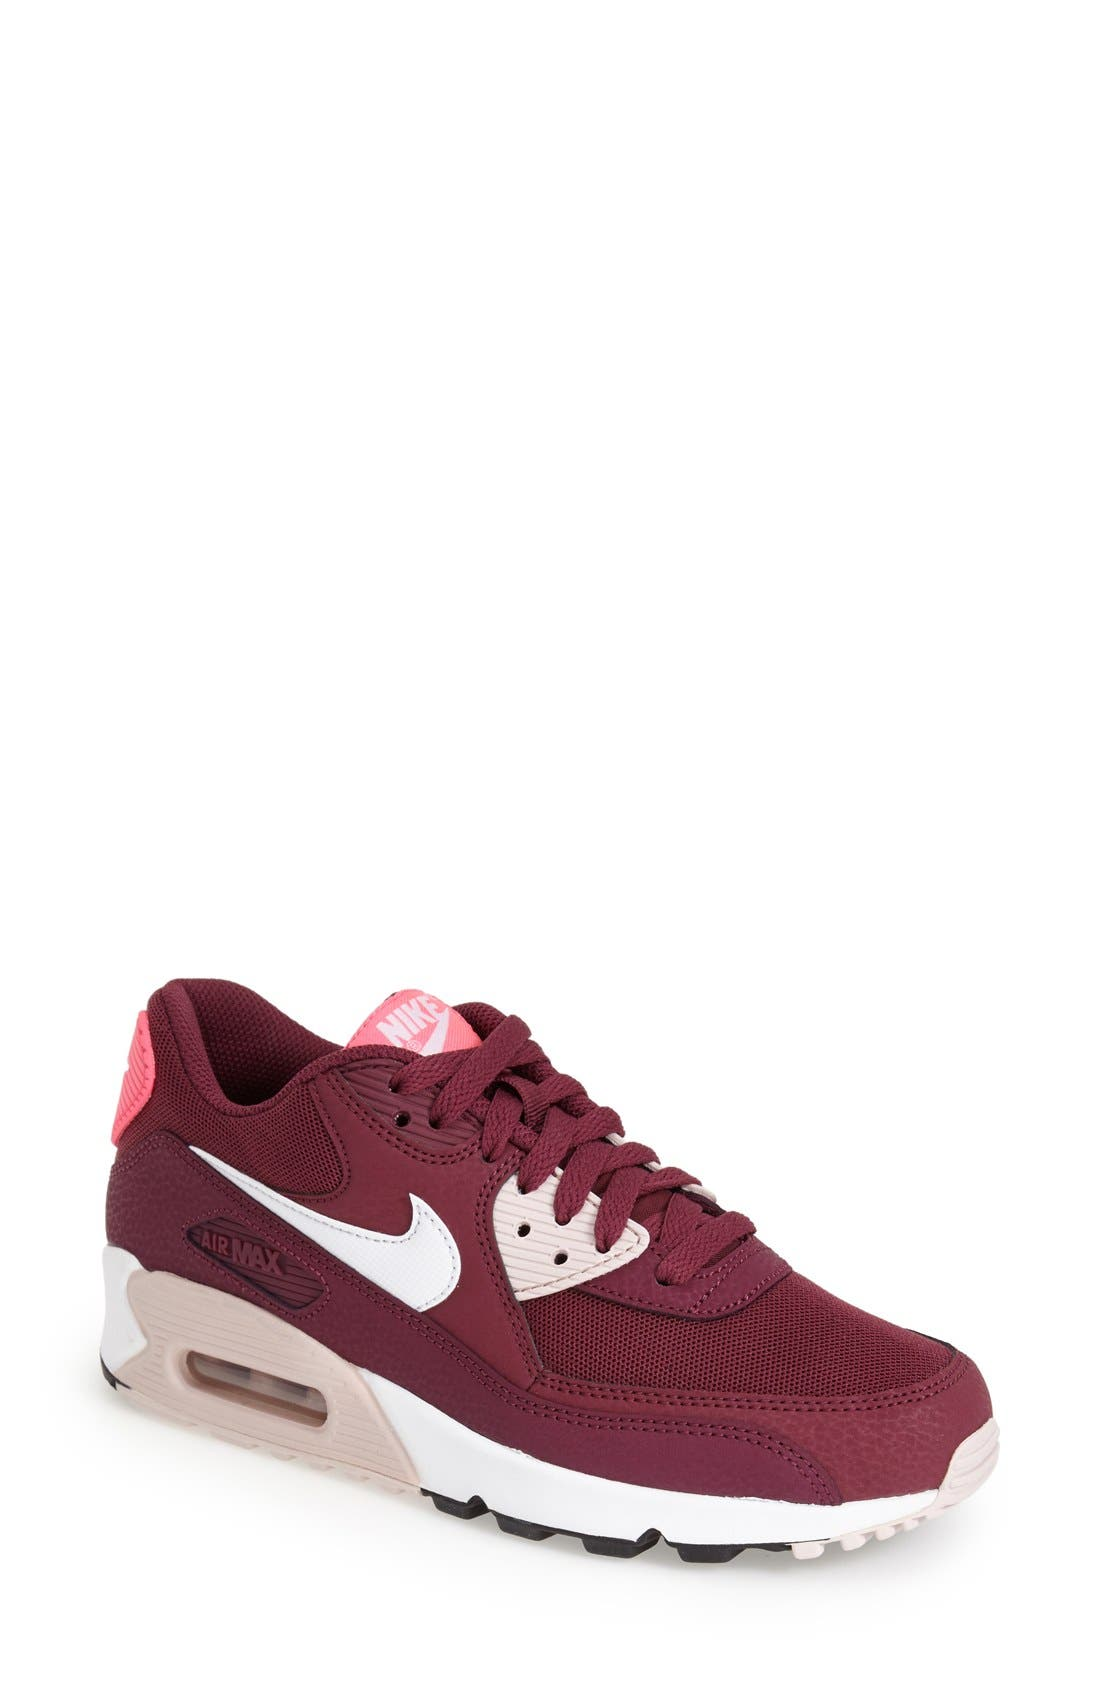 Main Image - Nike 'Air Max - Essential' Sneaker (Women)